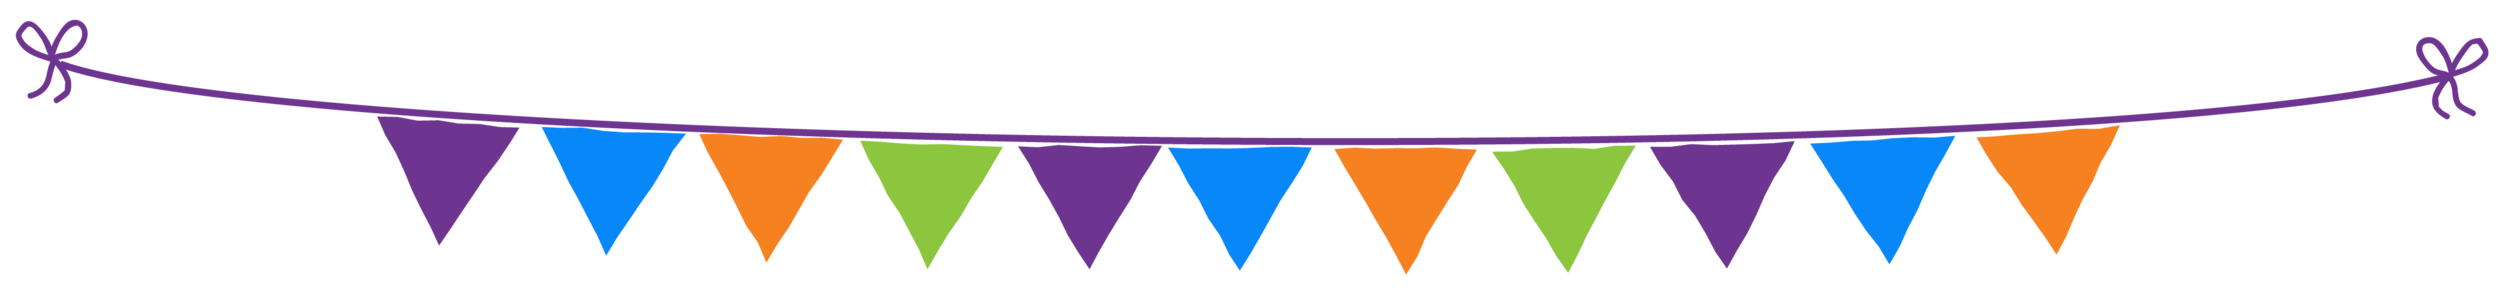 BANNERFLAGSCOLOR2.png